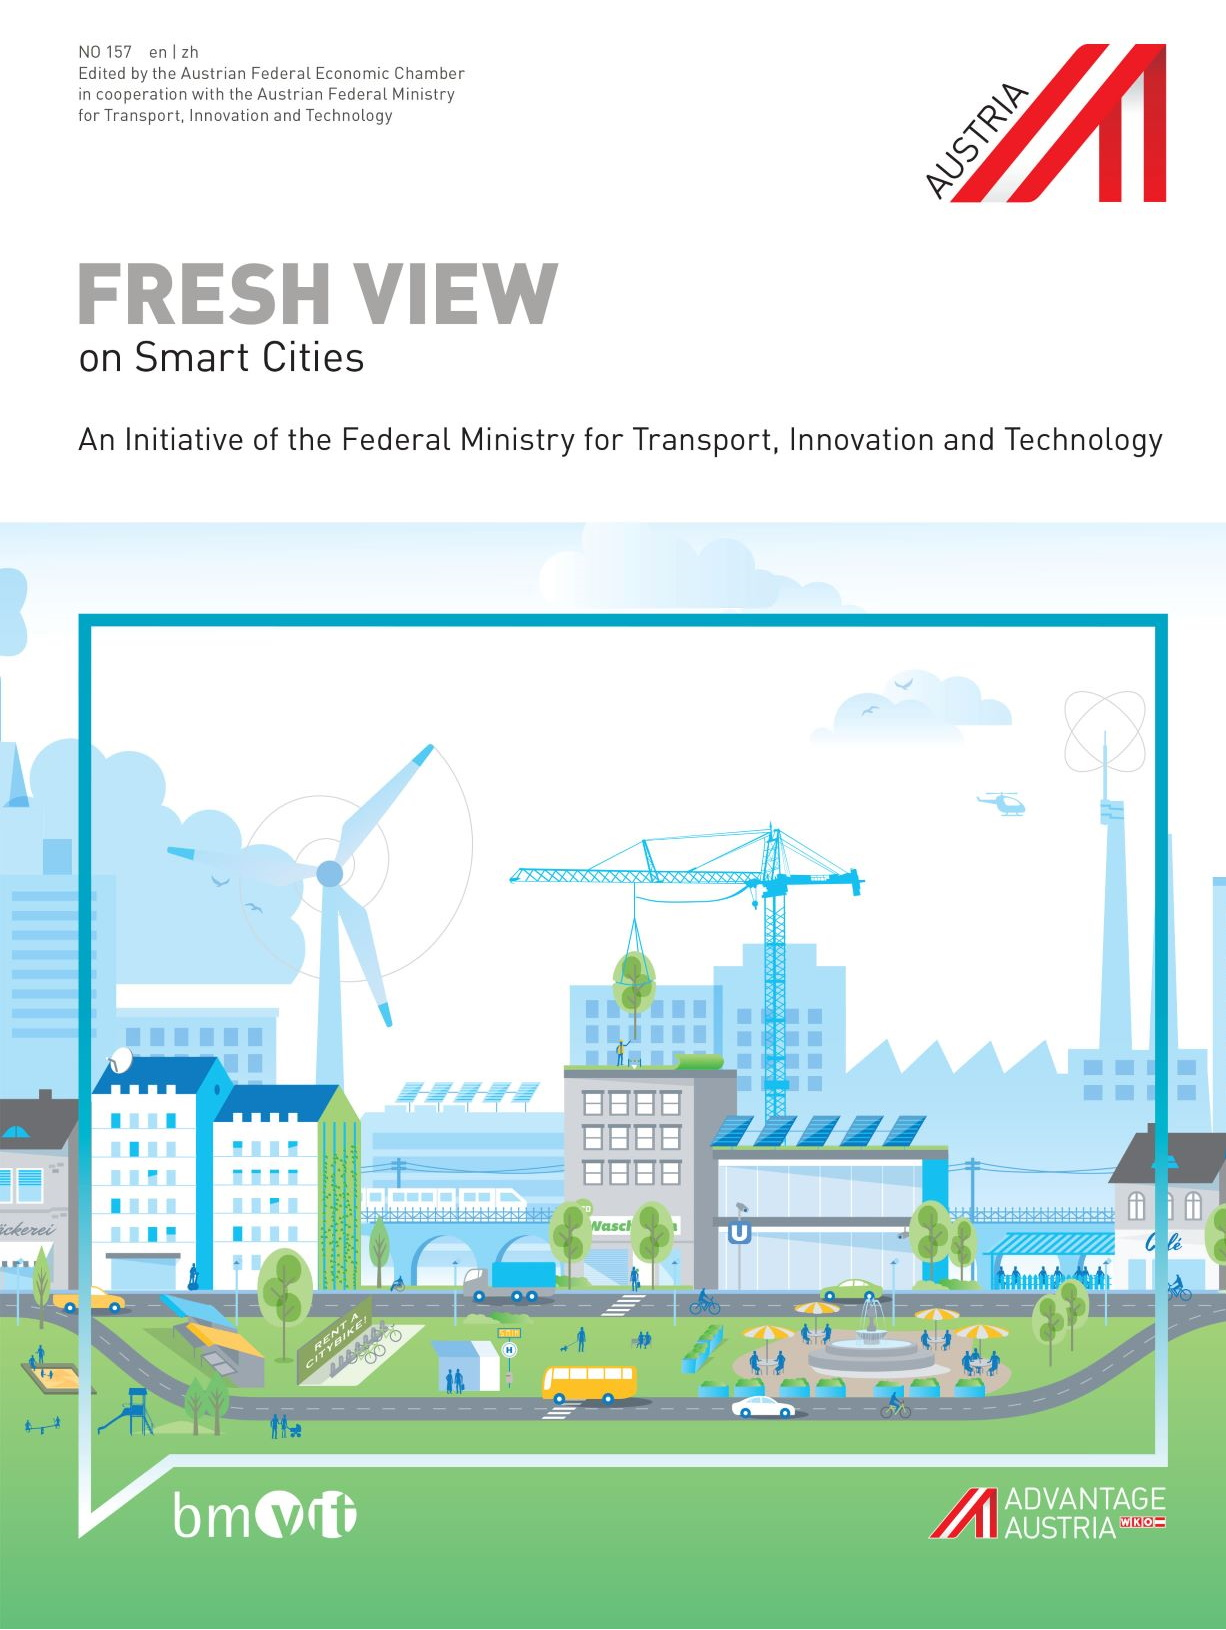 No. 157, Fresh View, Smart Cities, en | zh